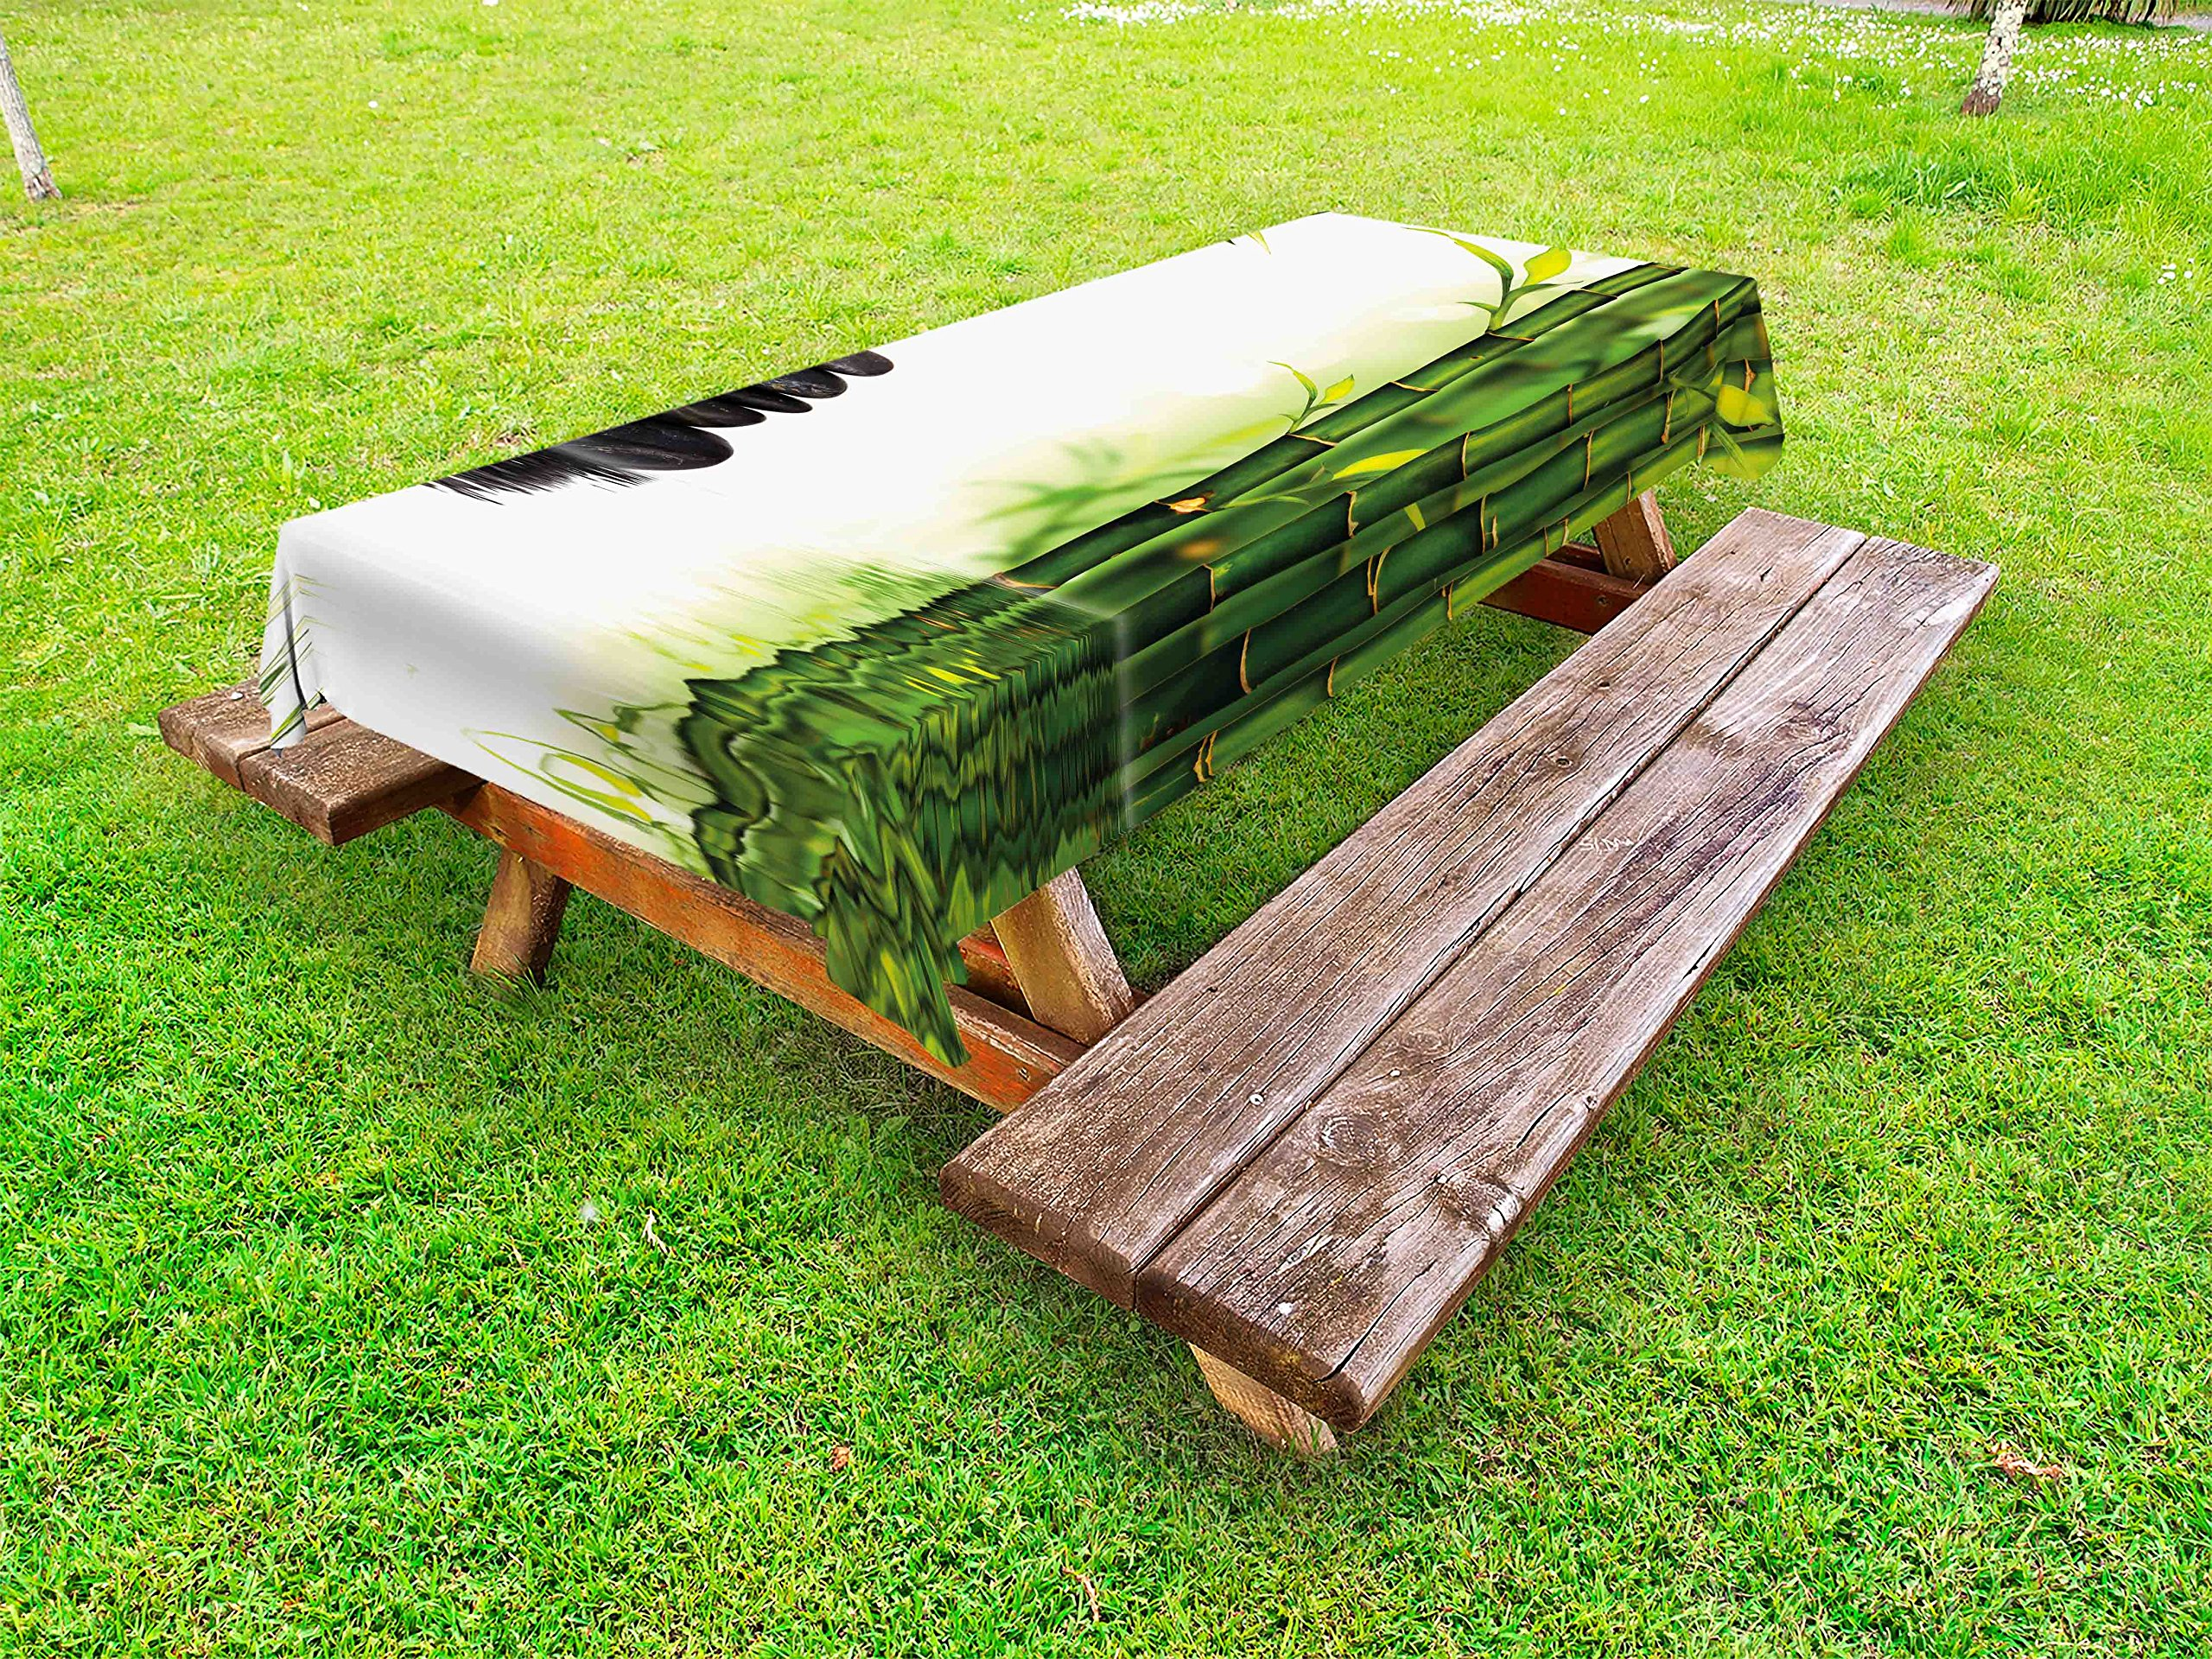 Lunarable Spa Outdoor Tablecloth, Bamboos Reflecting to The Water Near The Hot Black Massage Stones Print, Decorative Washable Picnic Table Cloth, 58 X 84 inches, Black Green and White